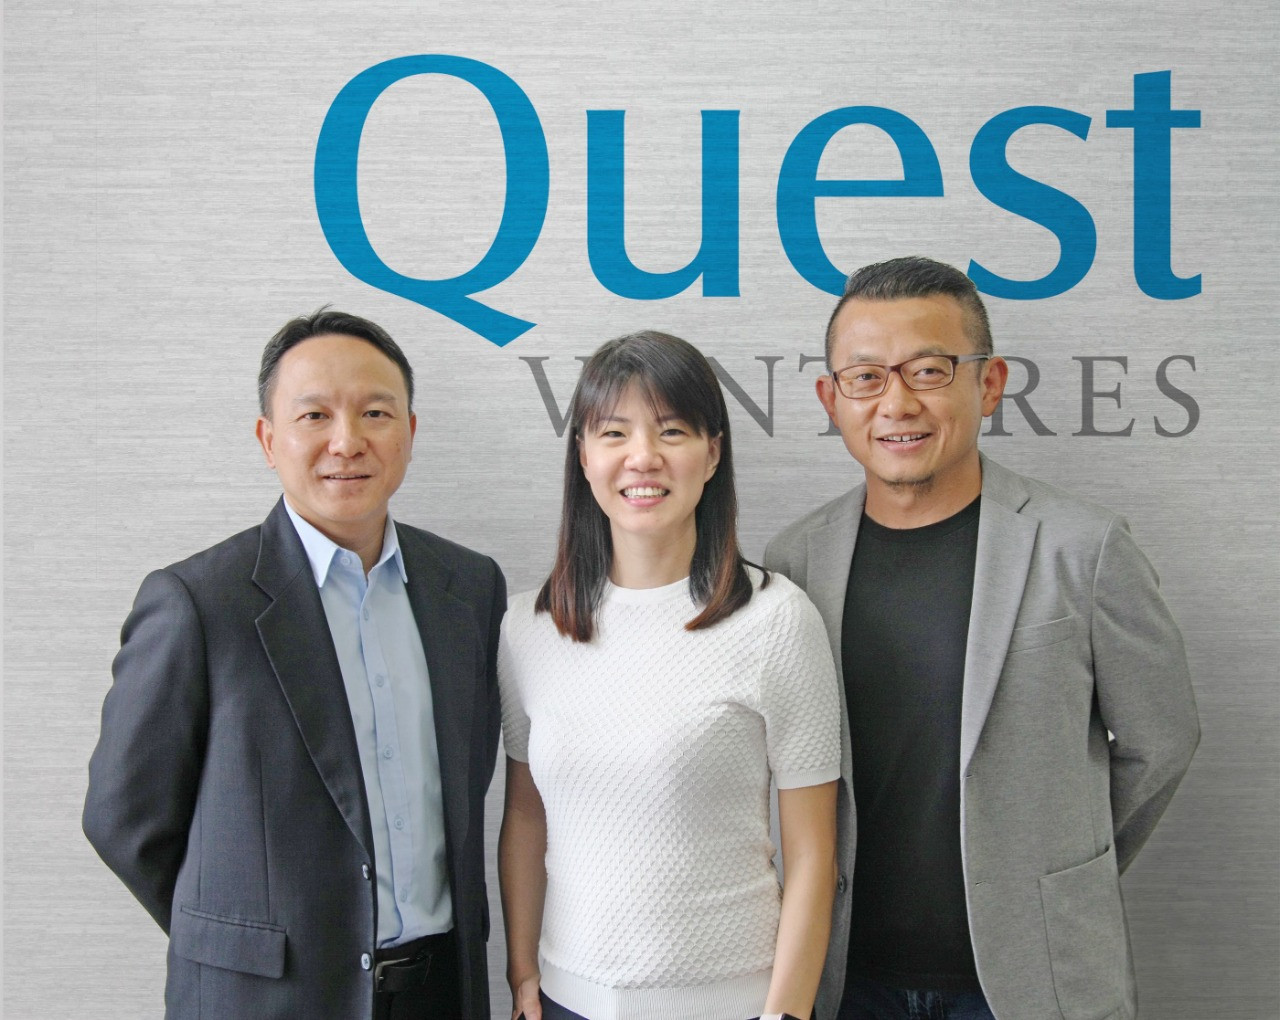 Asia's Quest Ventures plans to invest in Indonesia